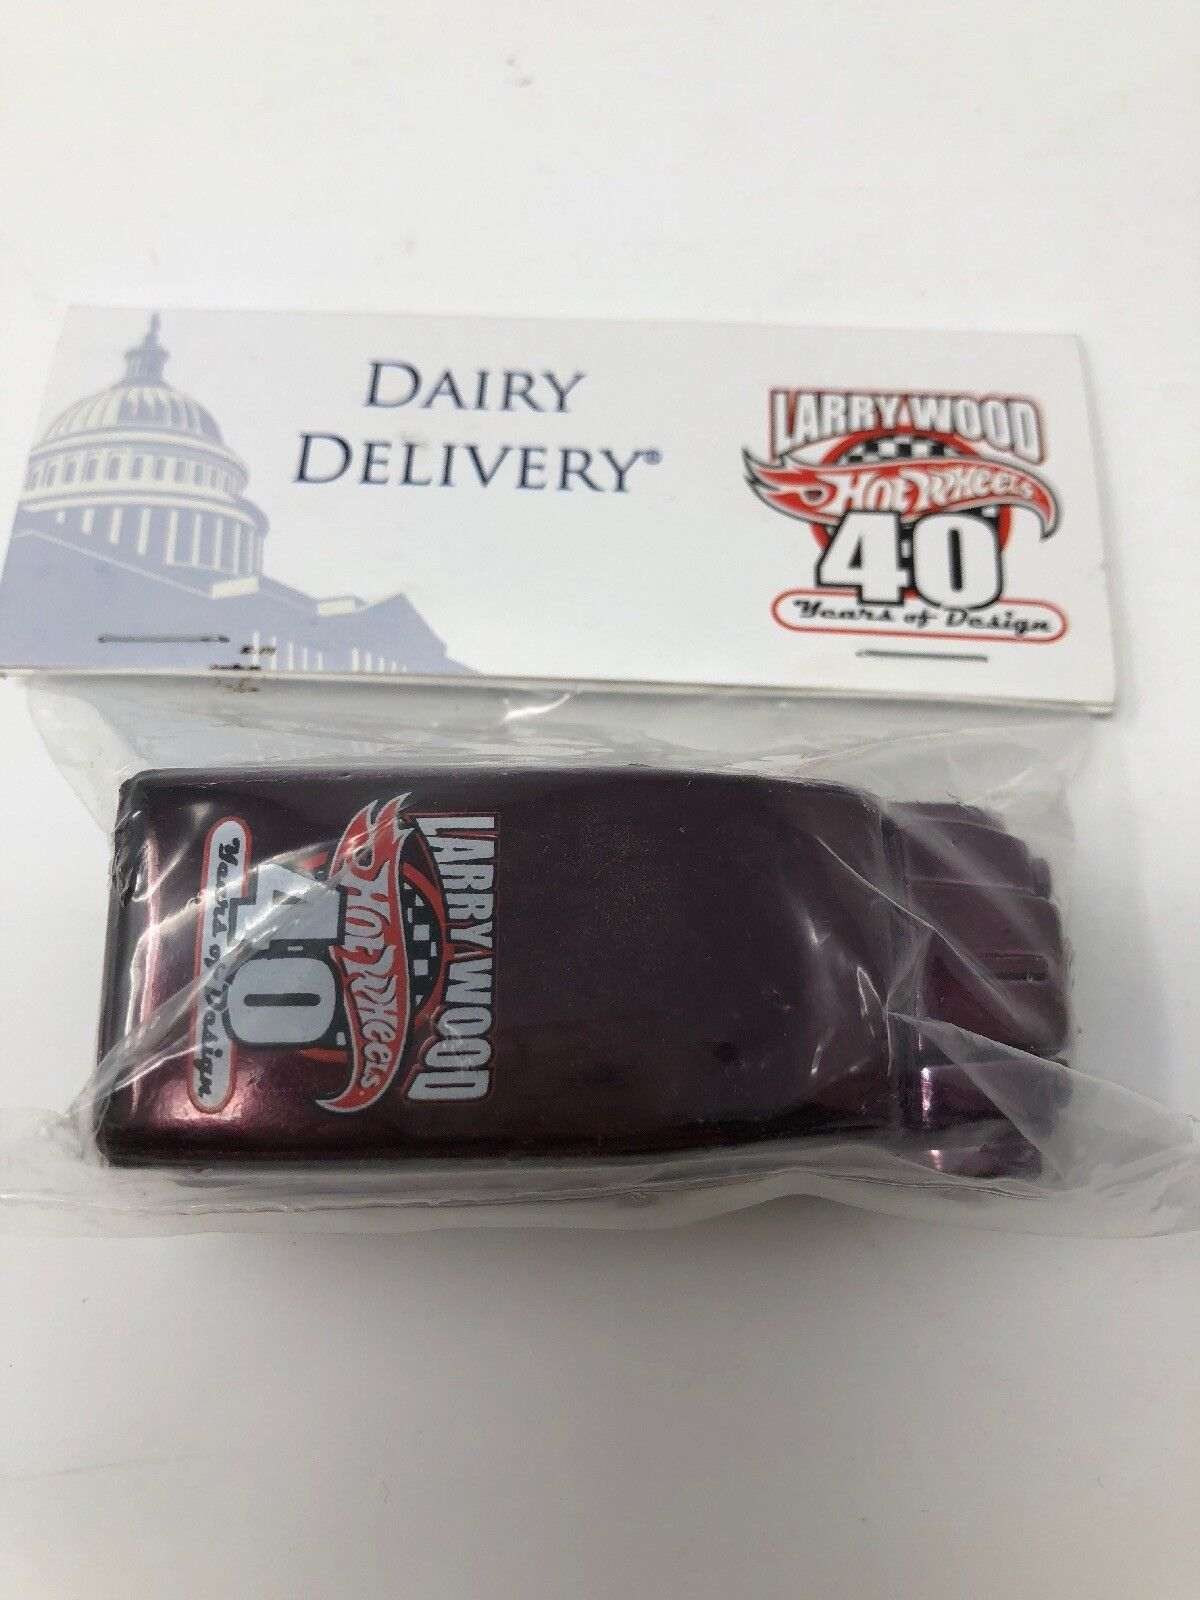 Hot Wheels Dairy Delivery 9th Annual Collectors Nationals 1 79